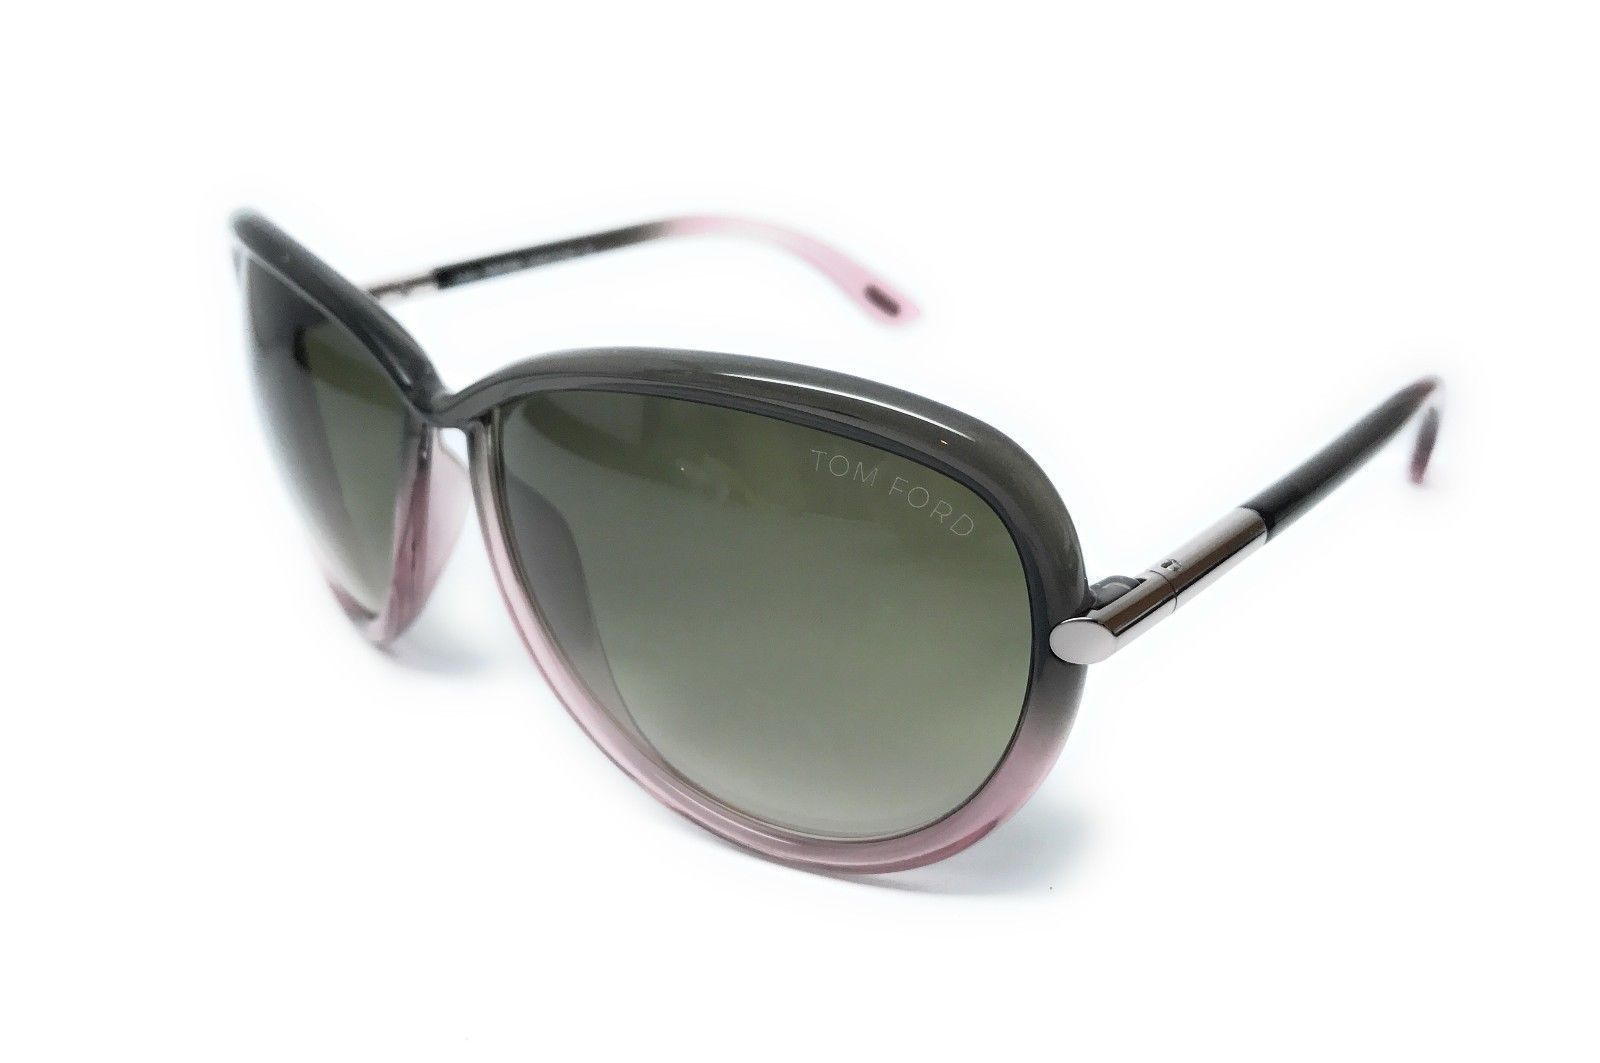 4d430600d65 New Tom Ford TF161 95P Sabrina 61MM Clear and similar items